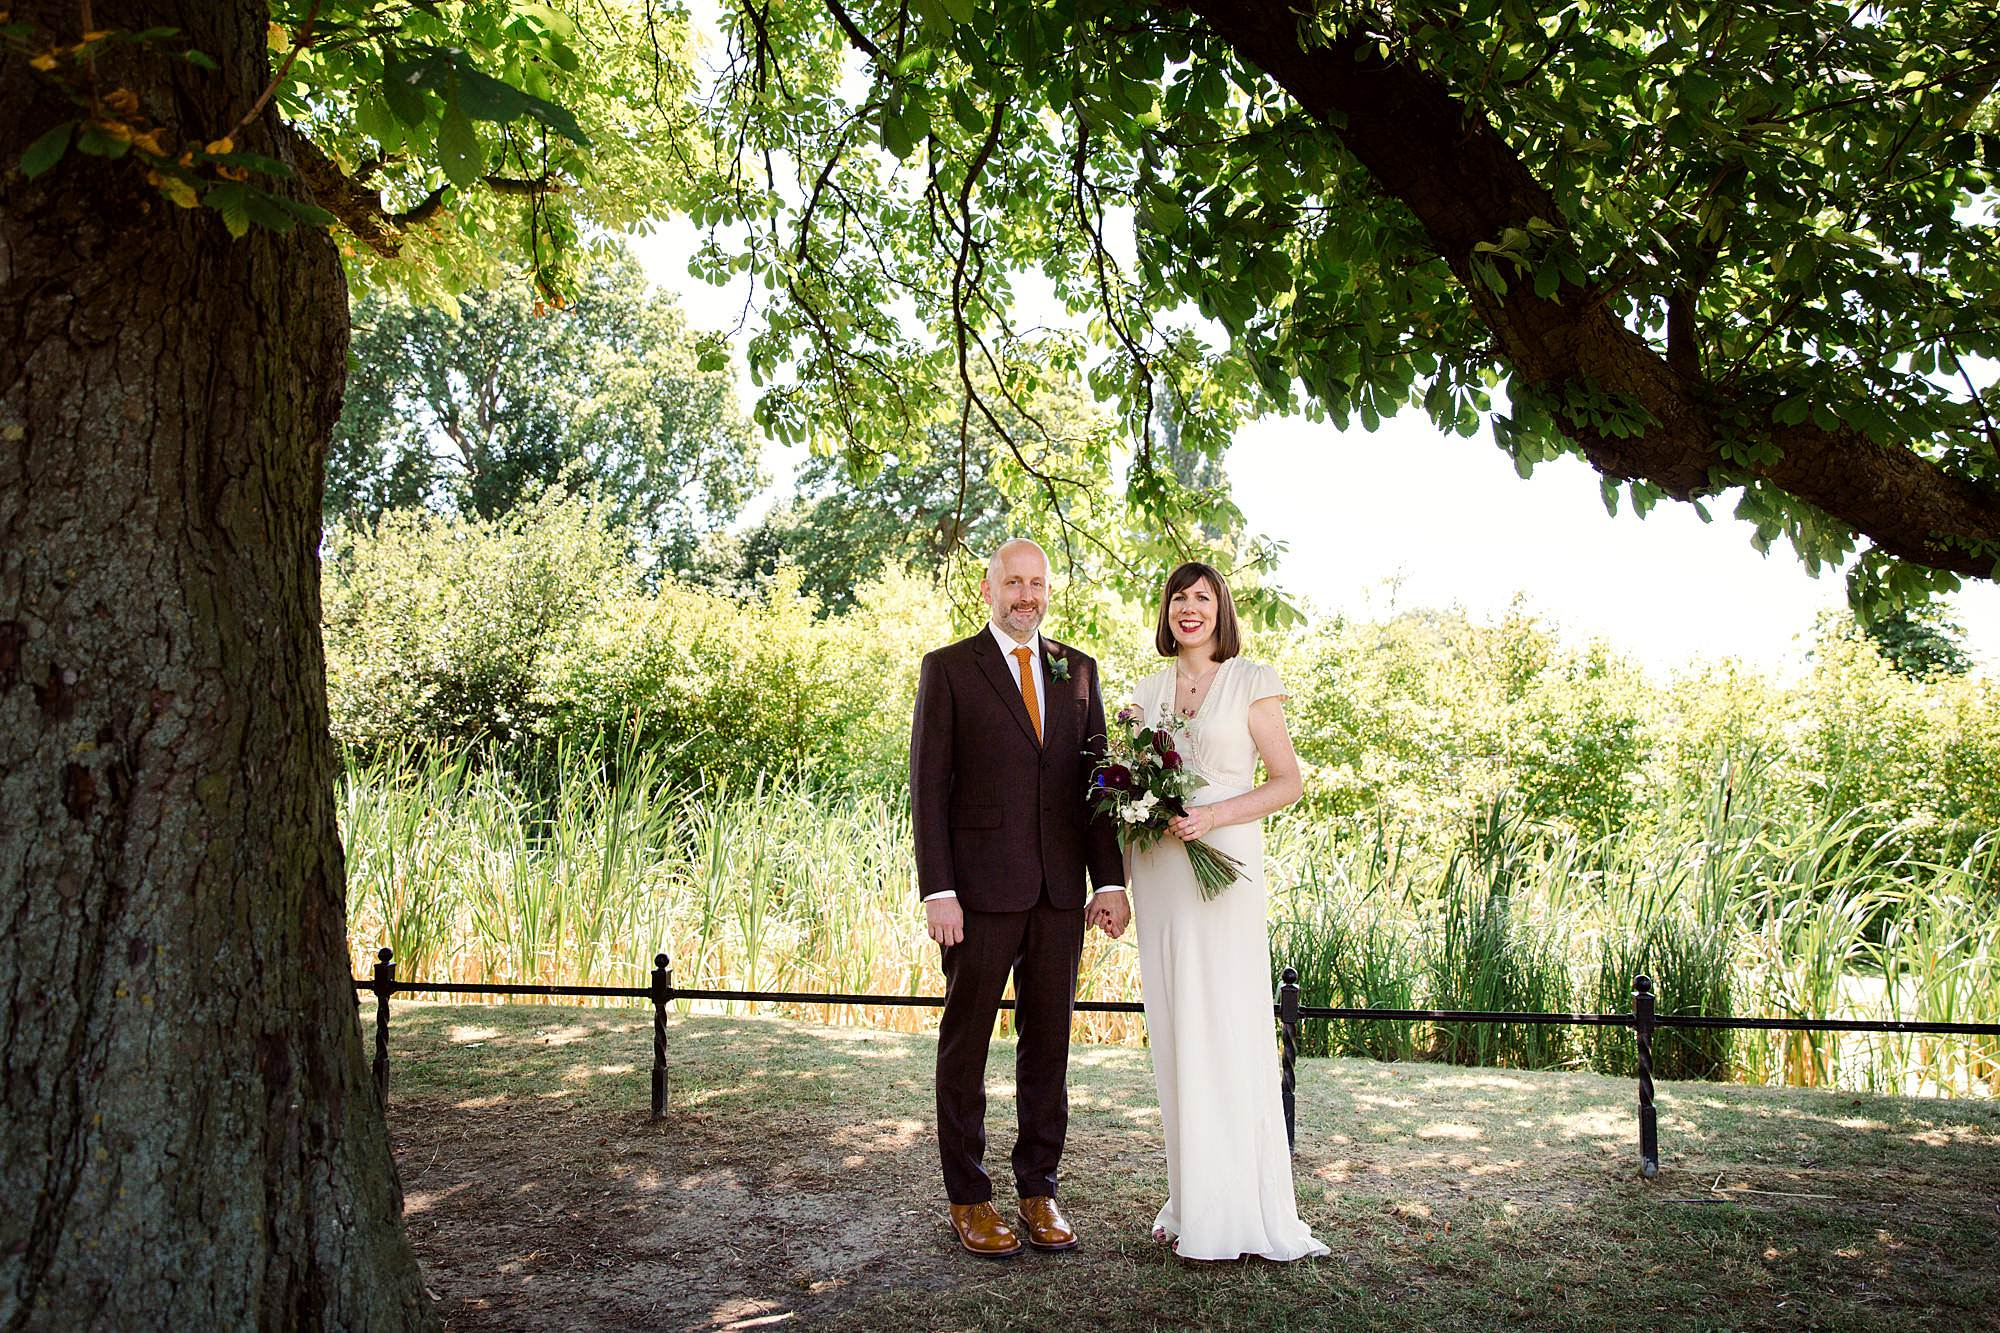 Clapton Country Club wedding photography ceremony bride and groom under a tree